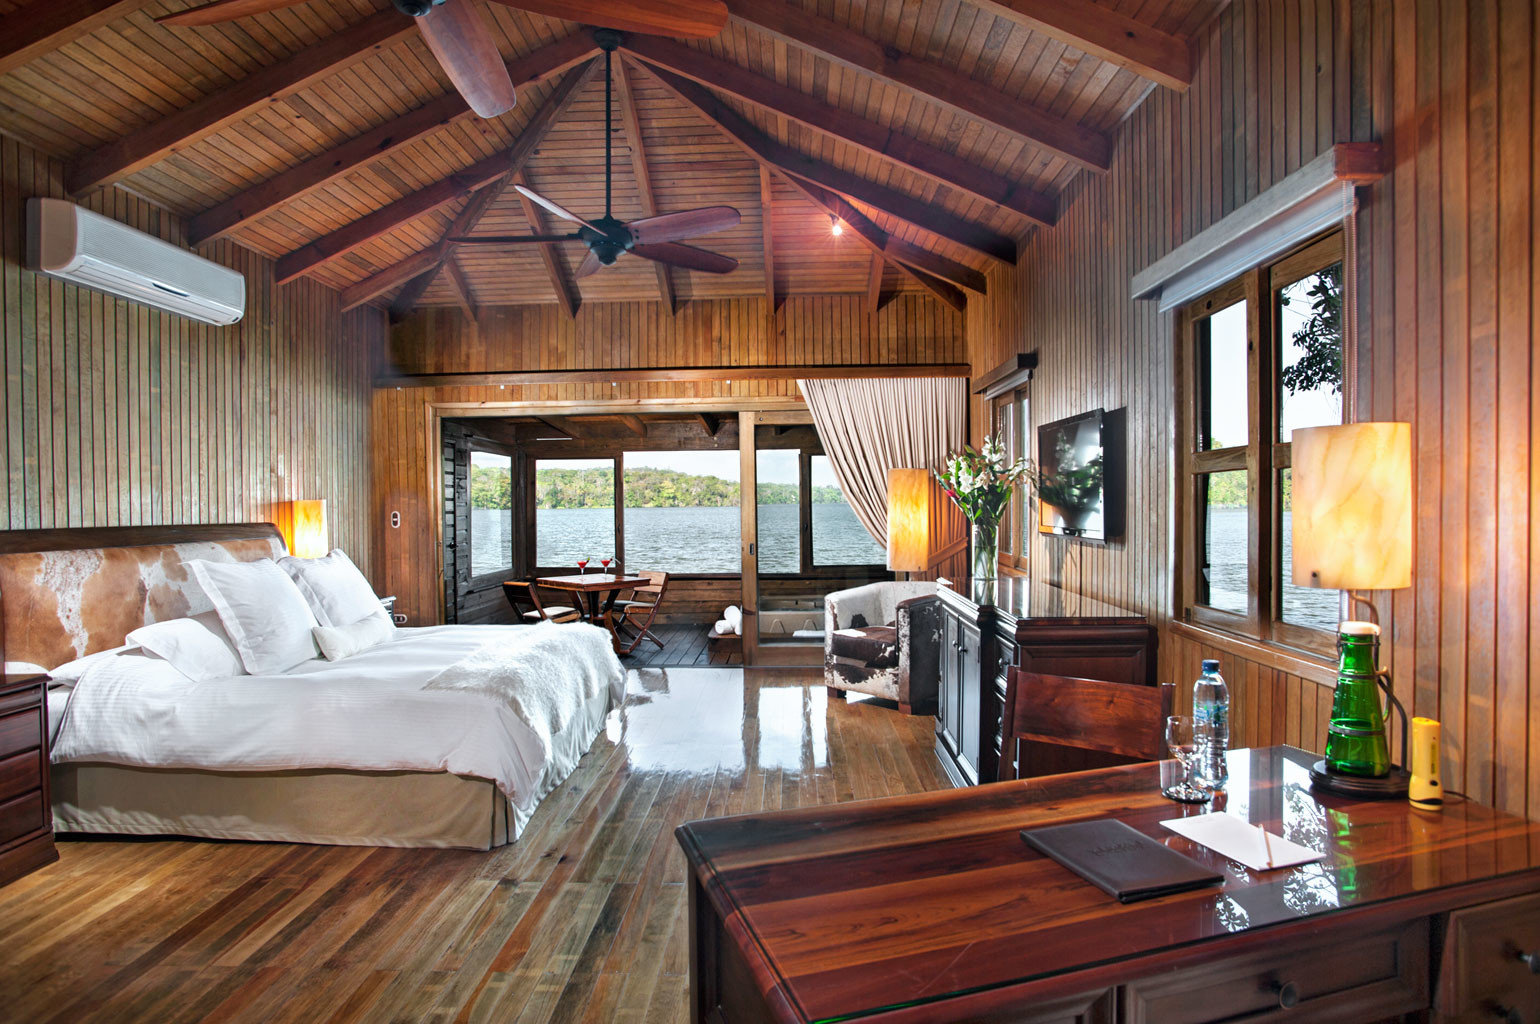 Bedroom Classic Luxury Patio Romantic Suite Waterfront property wooden home house log cabin living room cottage hardwood farmhouse Villa Resort mansion